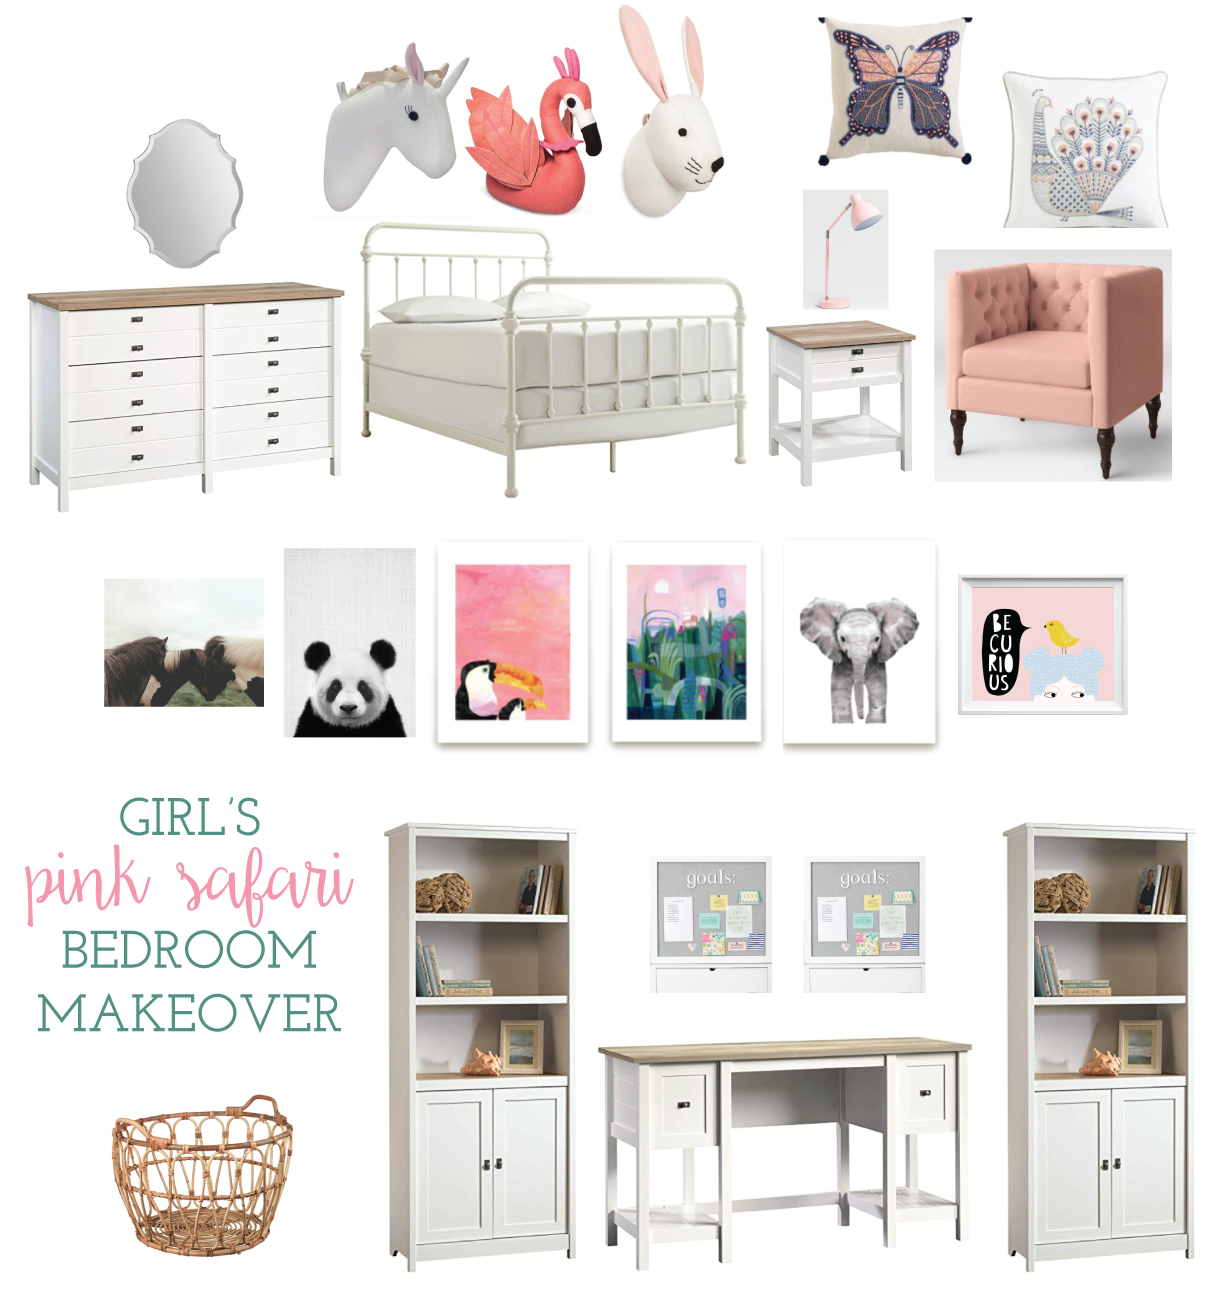 "It's week 2 of the Spring 2019 One Room Challenge. We're giving our tween daughter's bedroom a ""pink safari"" makeover."